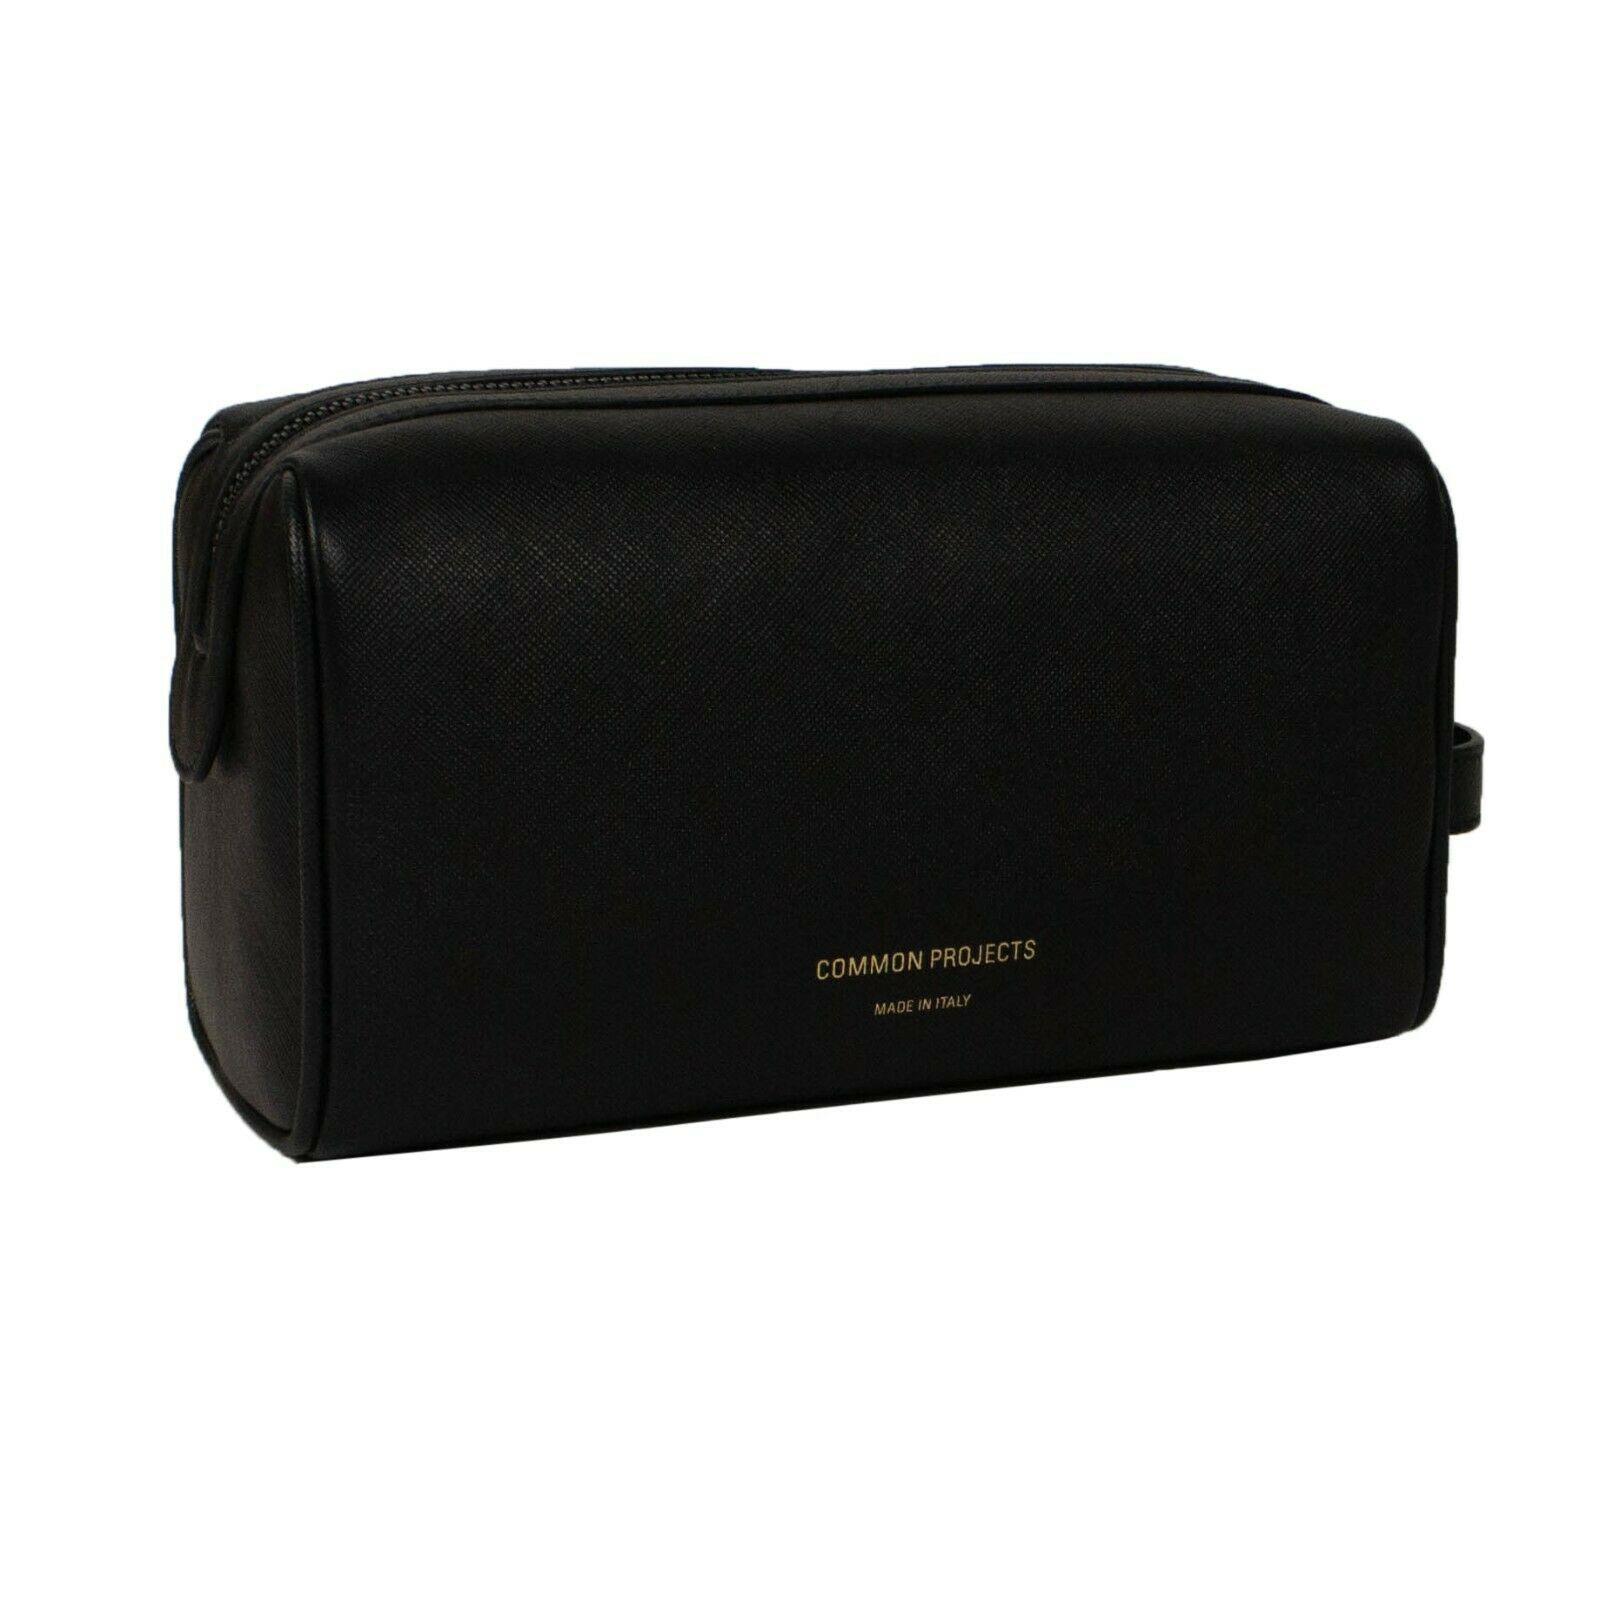 nwt-common-projects-black-leather-logo-toiletry-beauty-bag-362